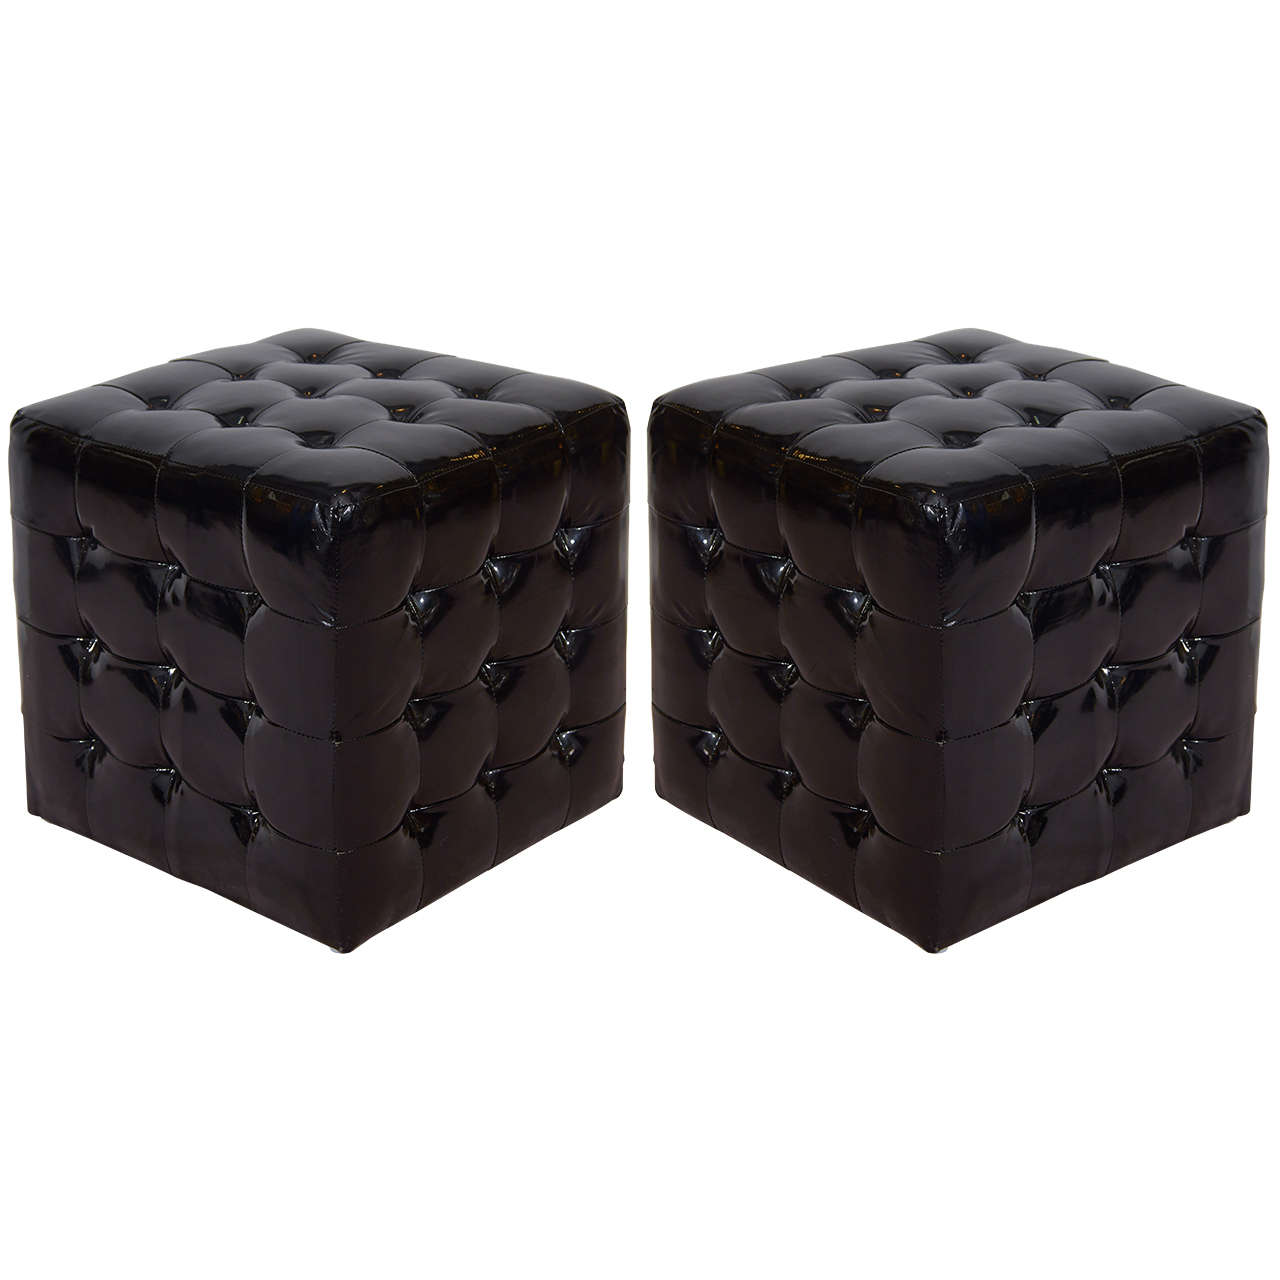 black wetlook faux leather tufted cube ottomans or benches 1